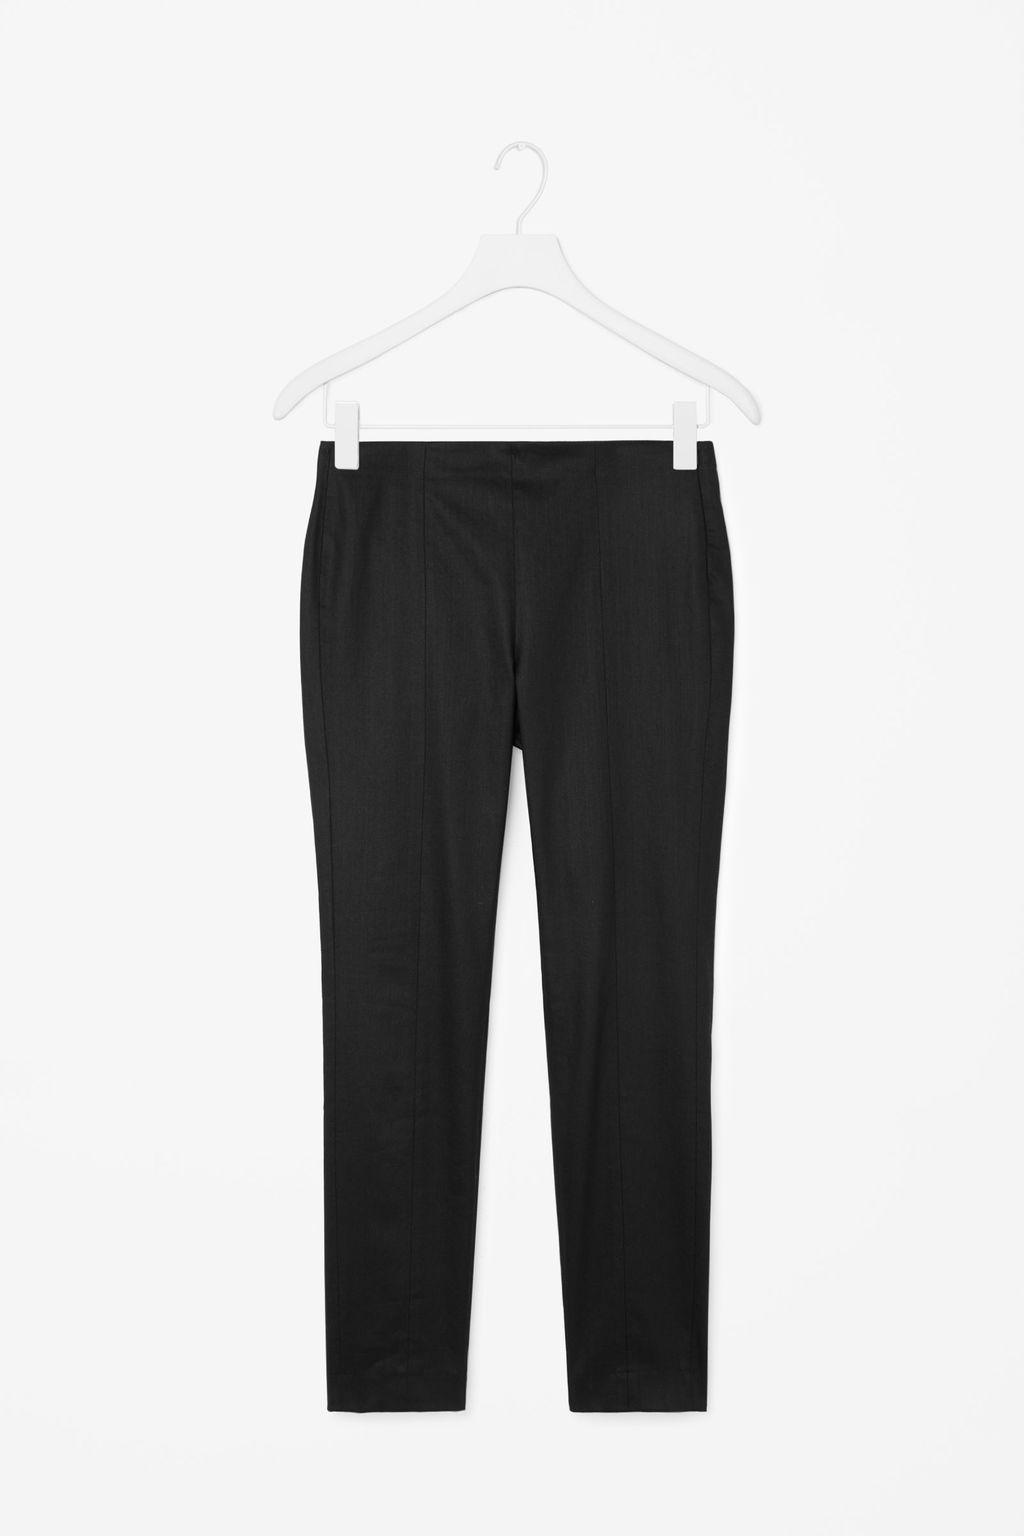 Skinny Side Zip Trousers - length: standard; pattern: plain; waist: mid/regular rise; predominant colour: black; occasions: work; fibres: cotton - stretch; fit: skinny/tight leg; pattern type: fabric; texture group: woven light midweight; style: standard; season: a/w 2015